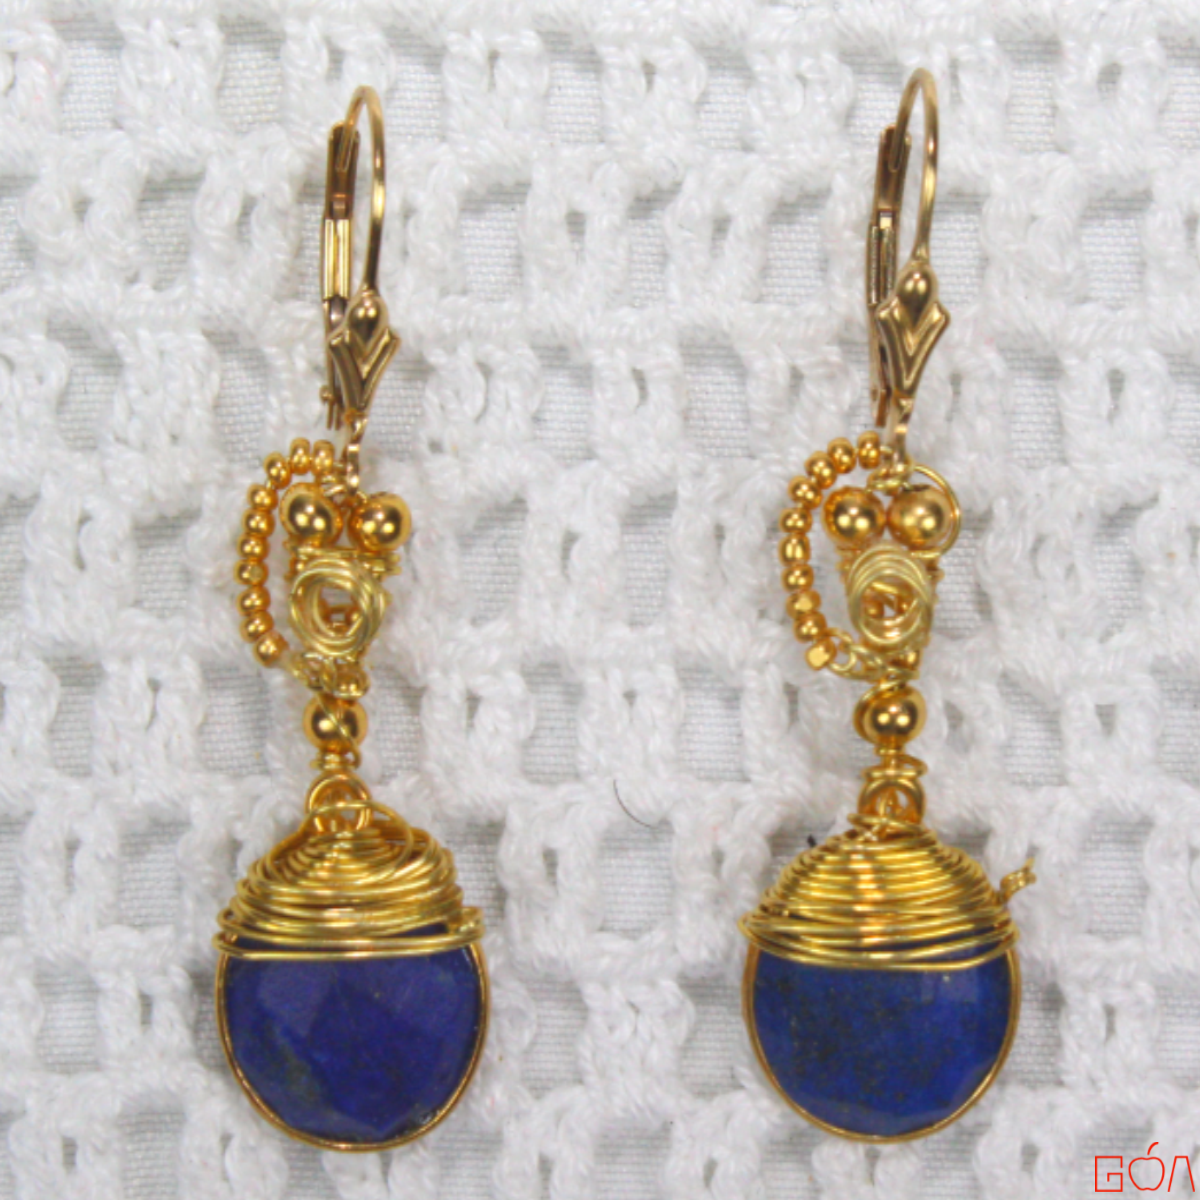 Boucles d'oreilles assorties au Collier Pharaon -1200x1200-RRG-